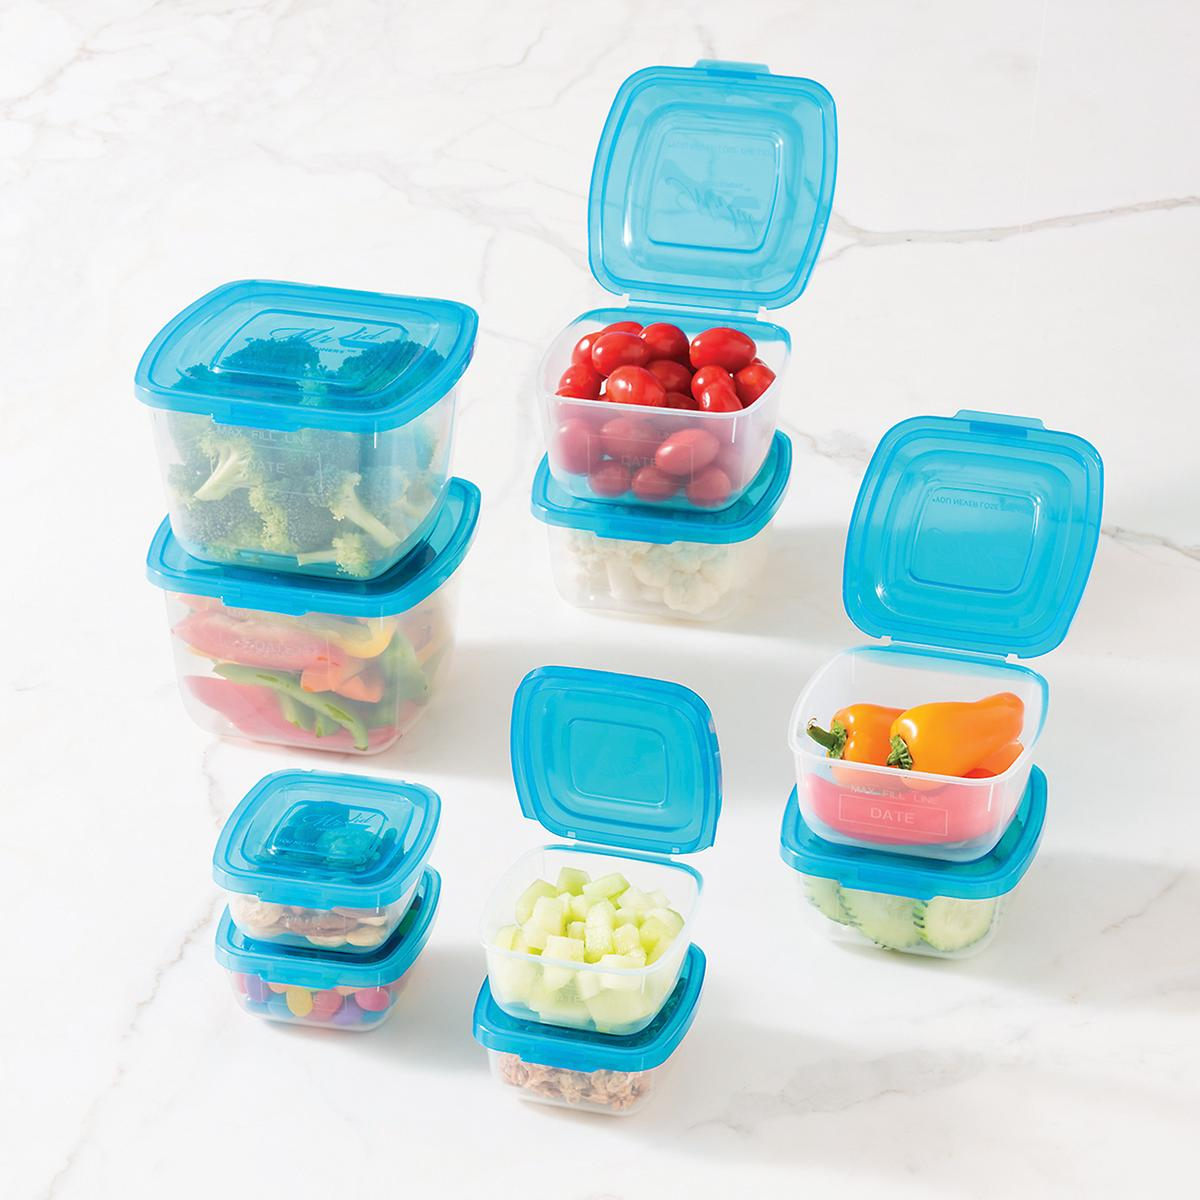 Mr. Lid Food Storage | The Container Store